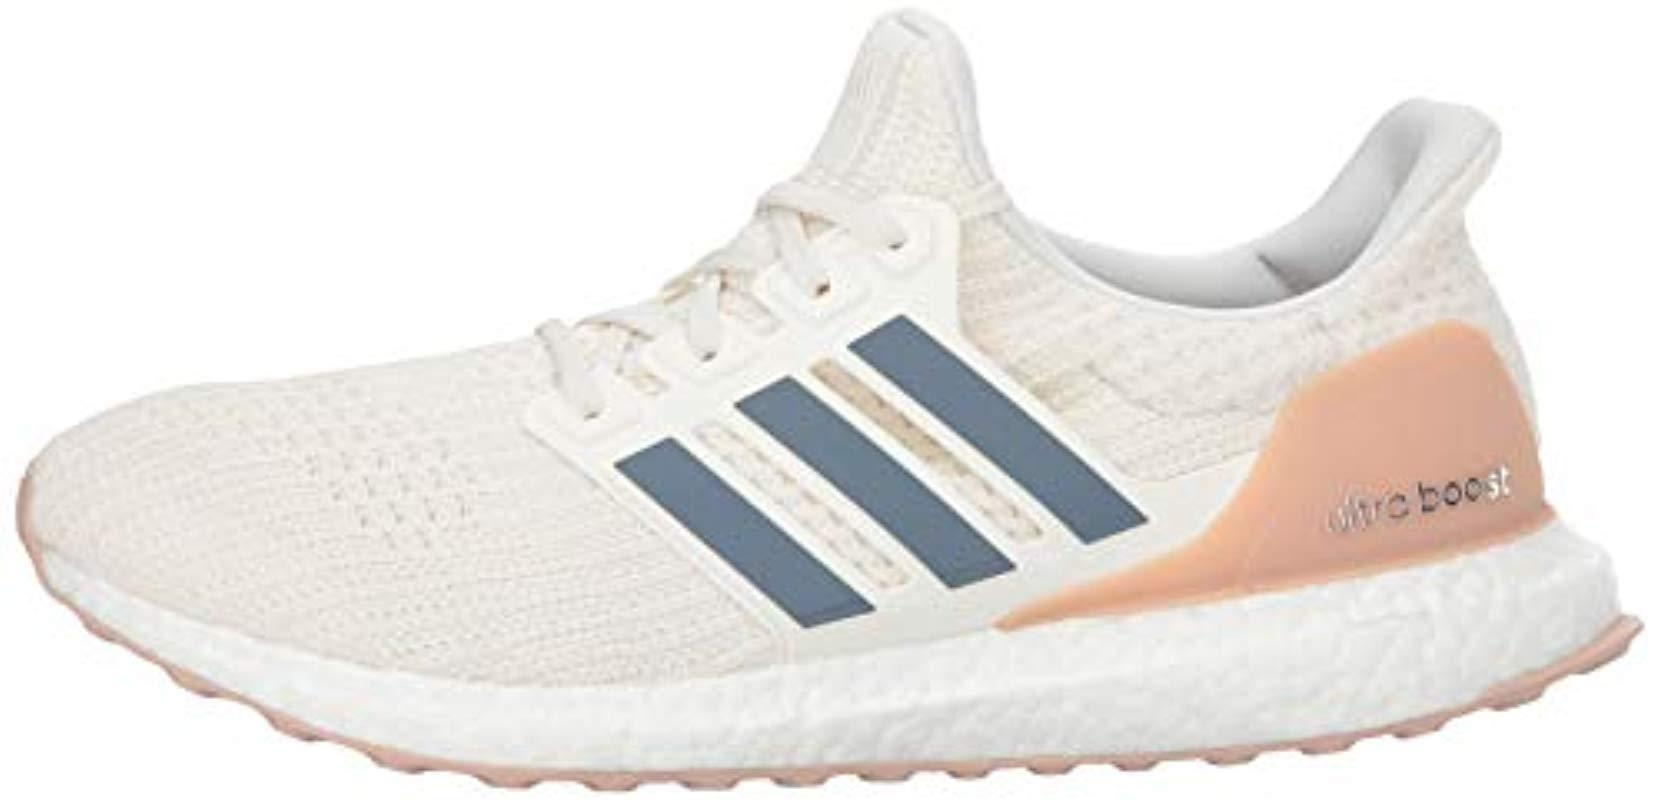 a705365fcd036 Adidas - Multicolor Ultraboost Training Shoes Blue for Men - Lyst